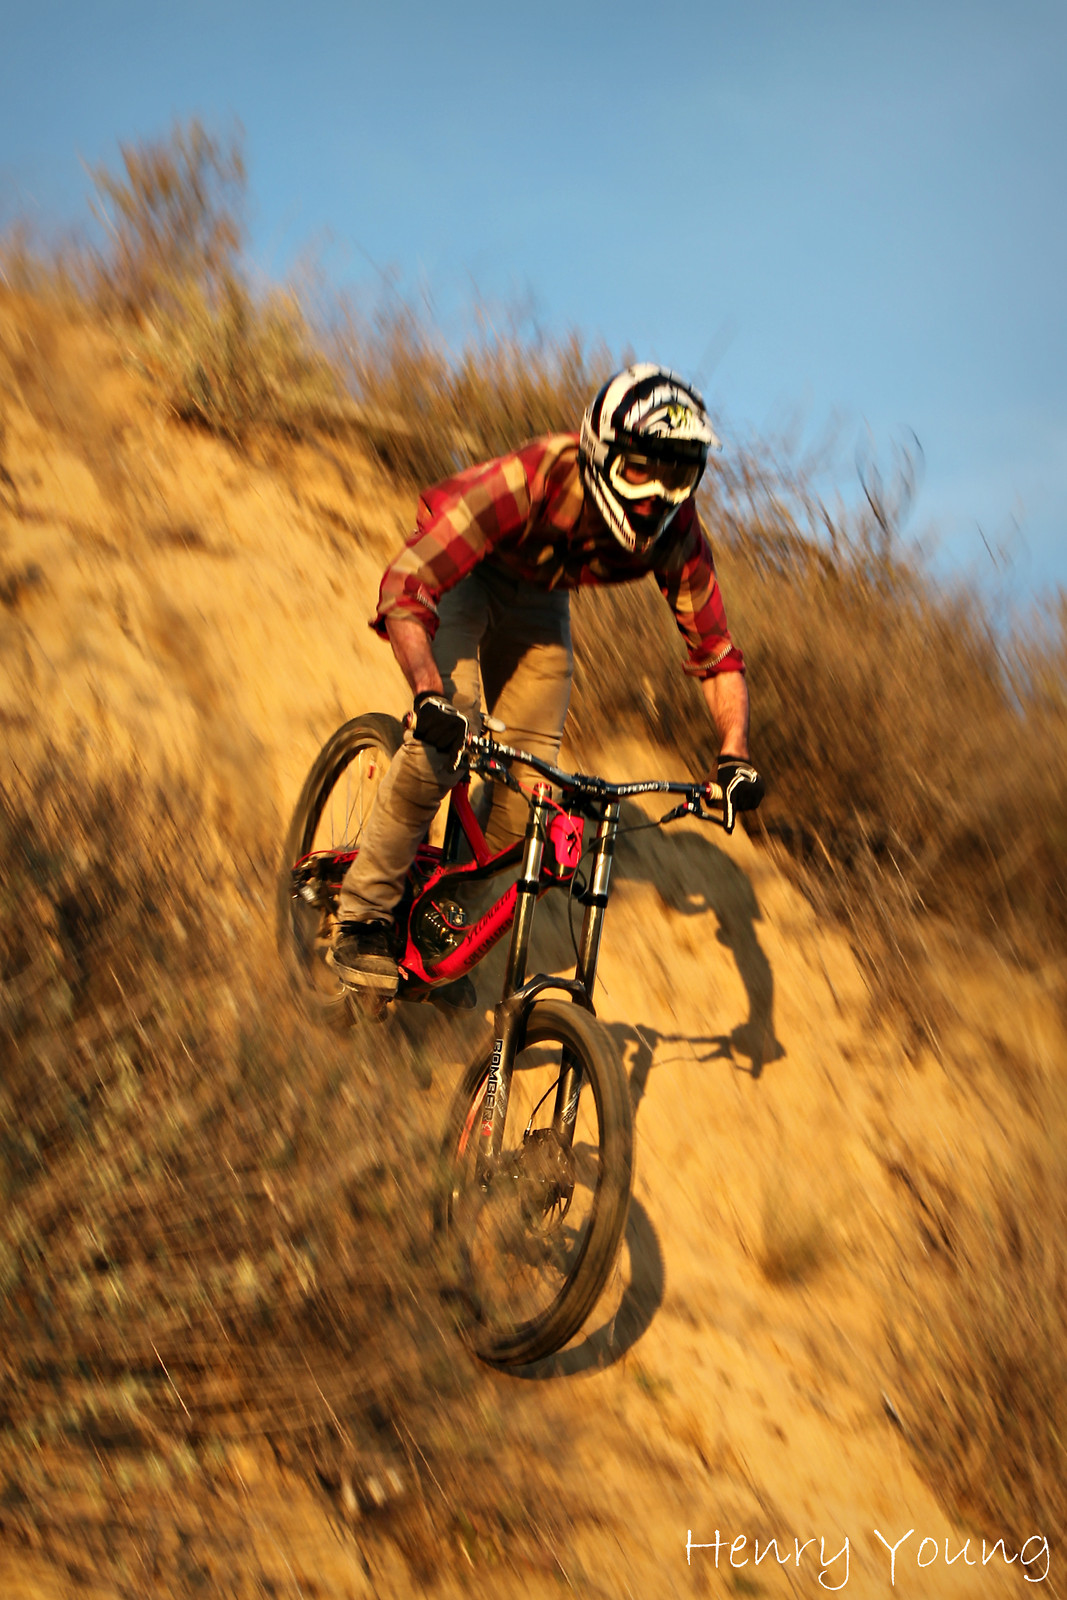 12-31-11 183 - Henry_Young - Mountain Biking Pictures - Vital MTB